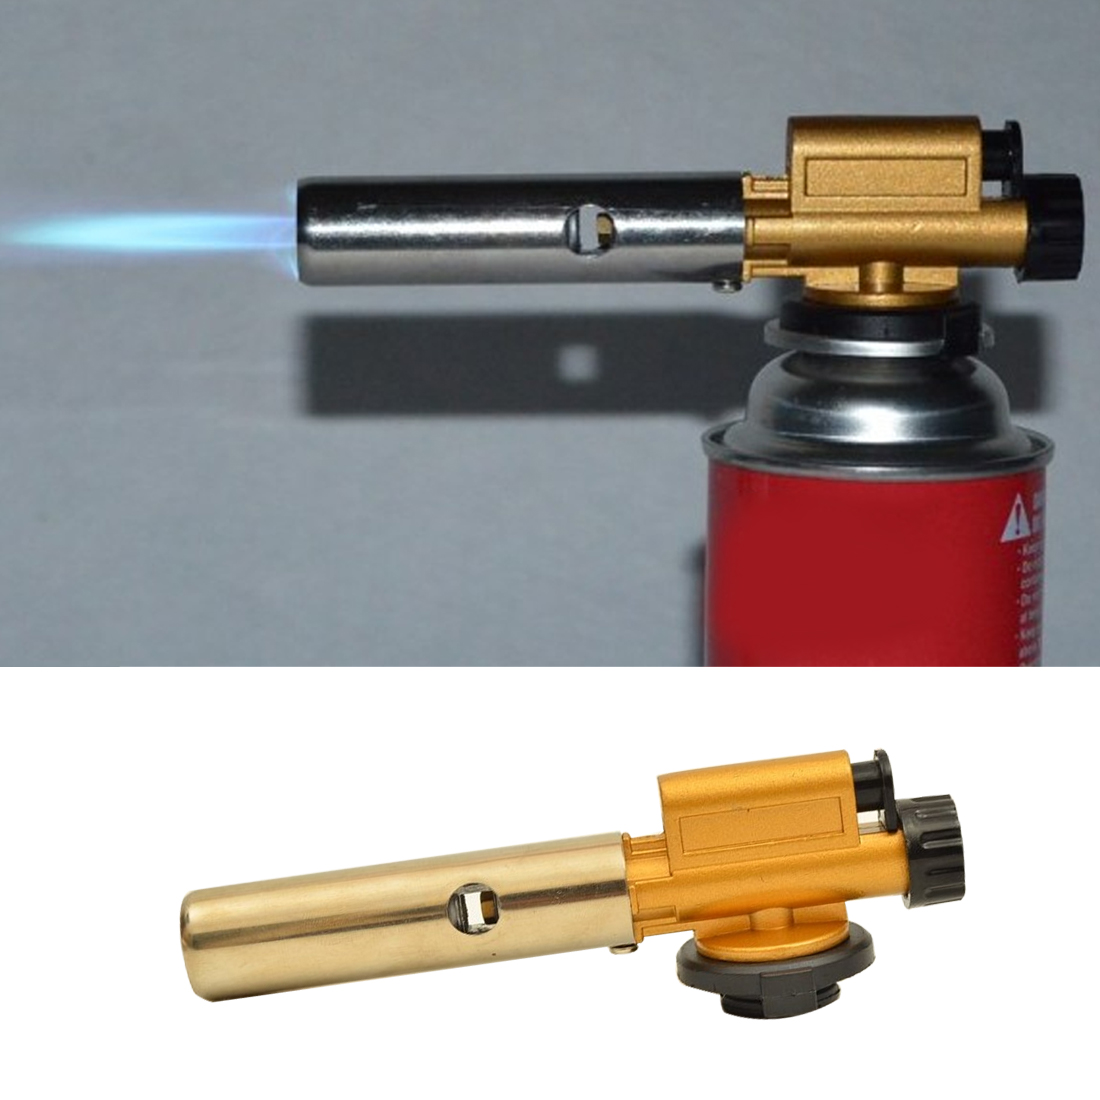 Butane Gas Burner Ignition Copper Flame Gun Lighter Tool Lighter For Outdoor Camping Picnic Cooking Welding Equipment